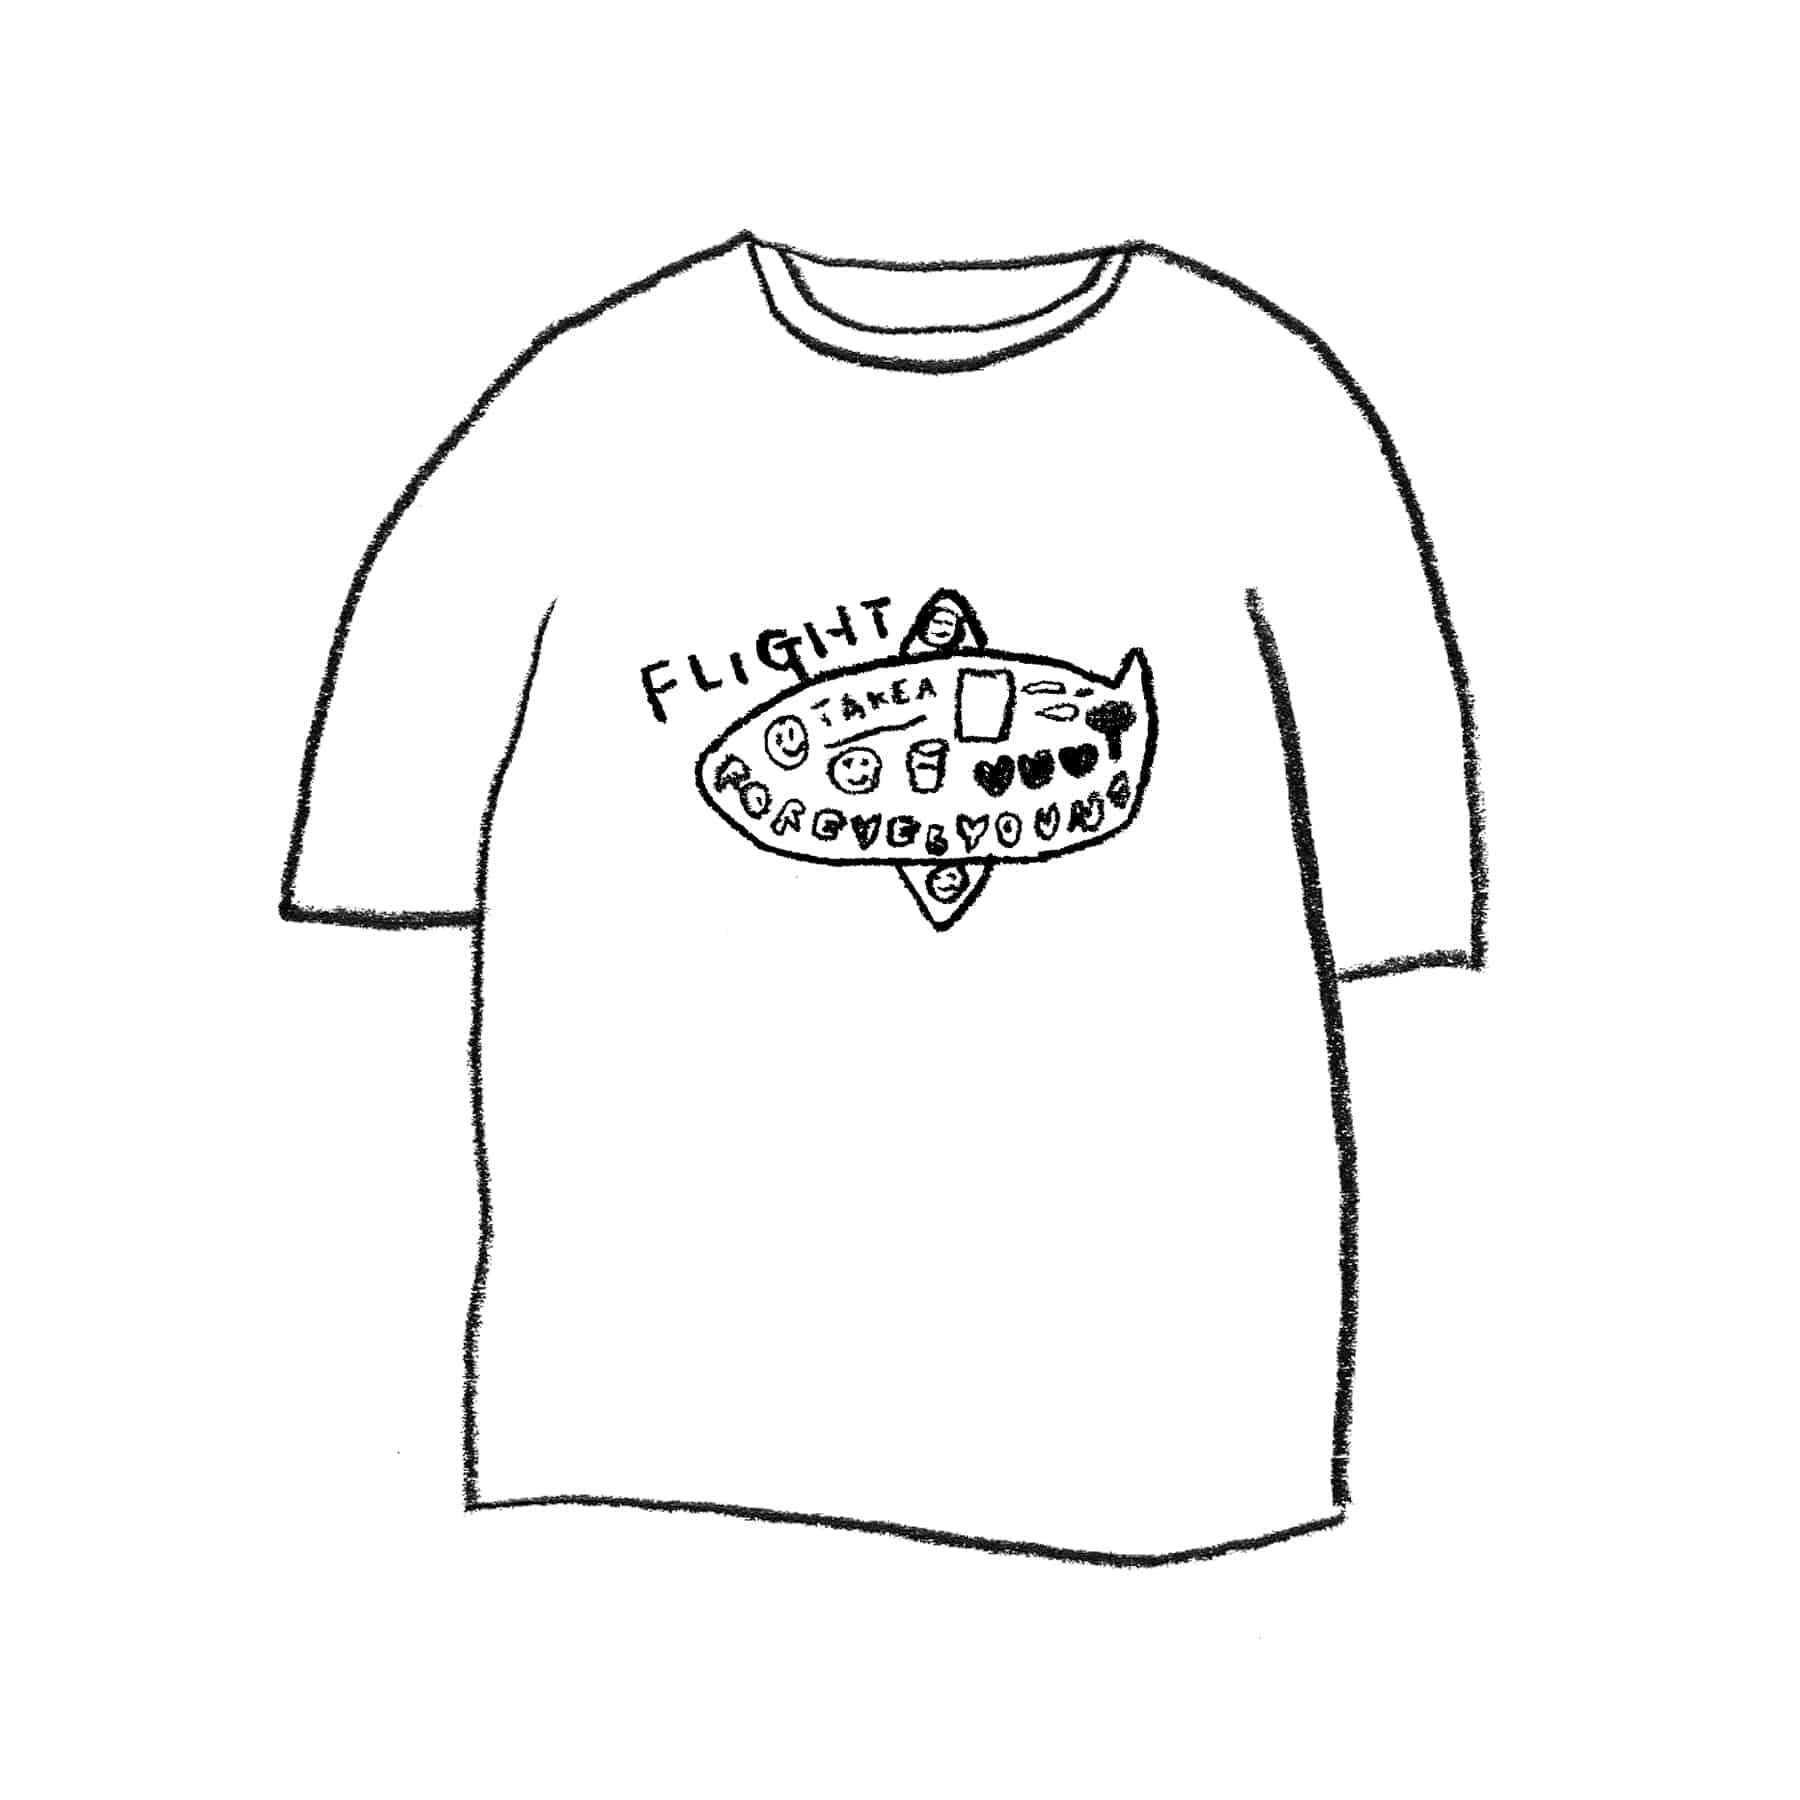 FLIGHT 1/2 T-SHIRT